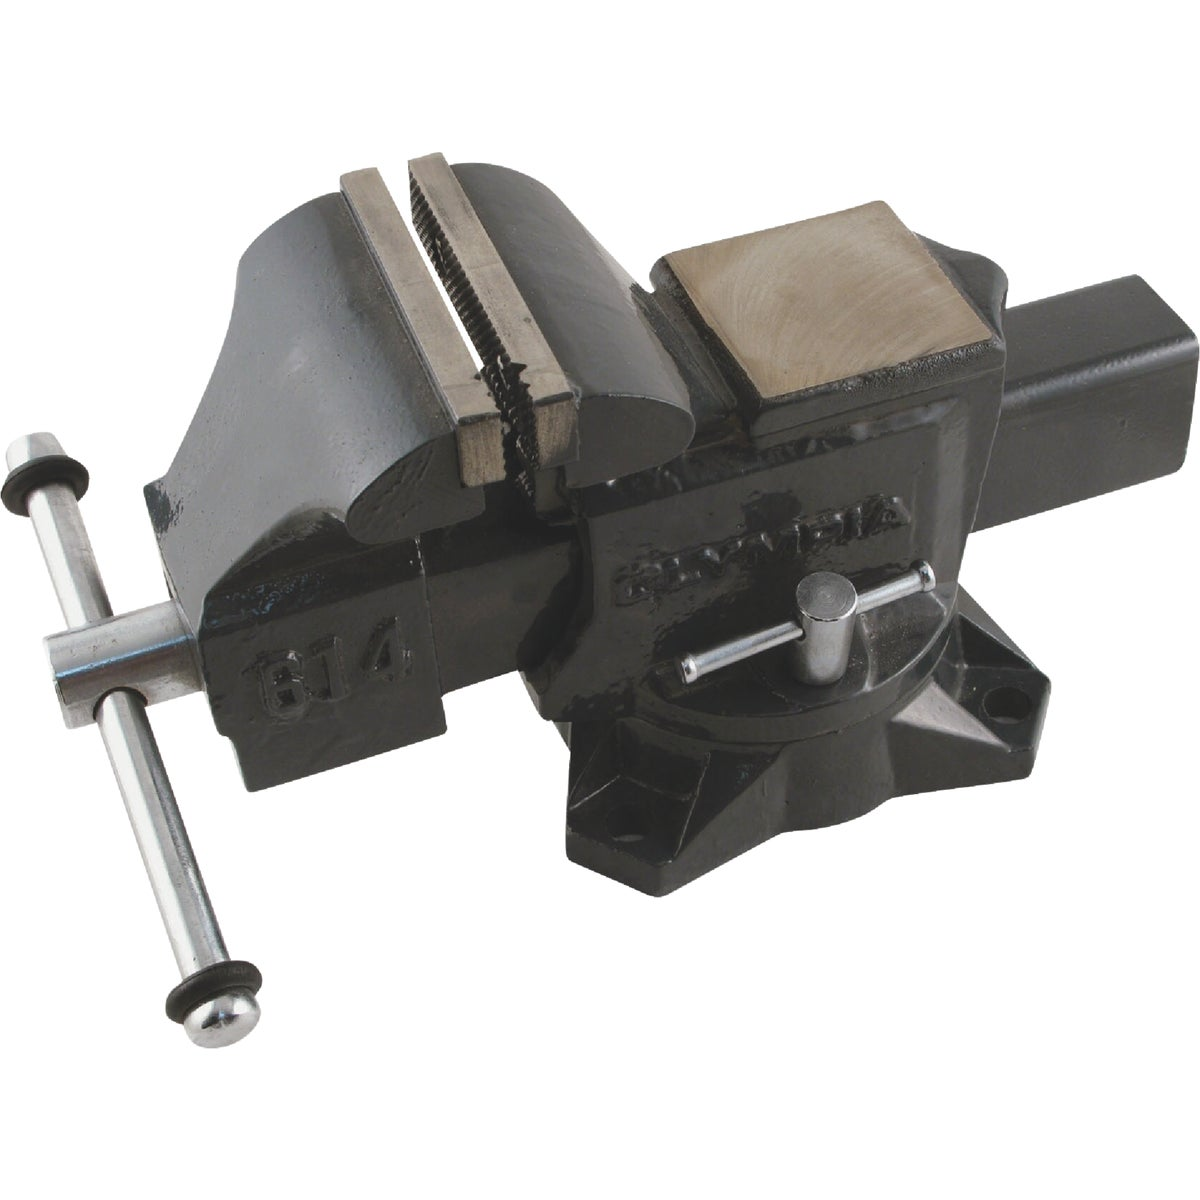 "4"" HD MECHANICS VISE - 38-614 by Olympia Tools"